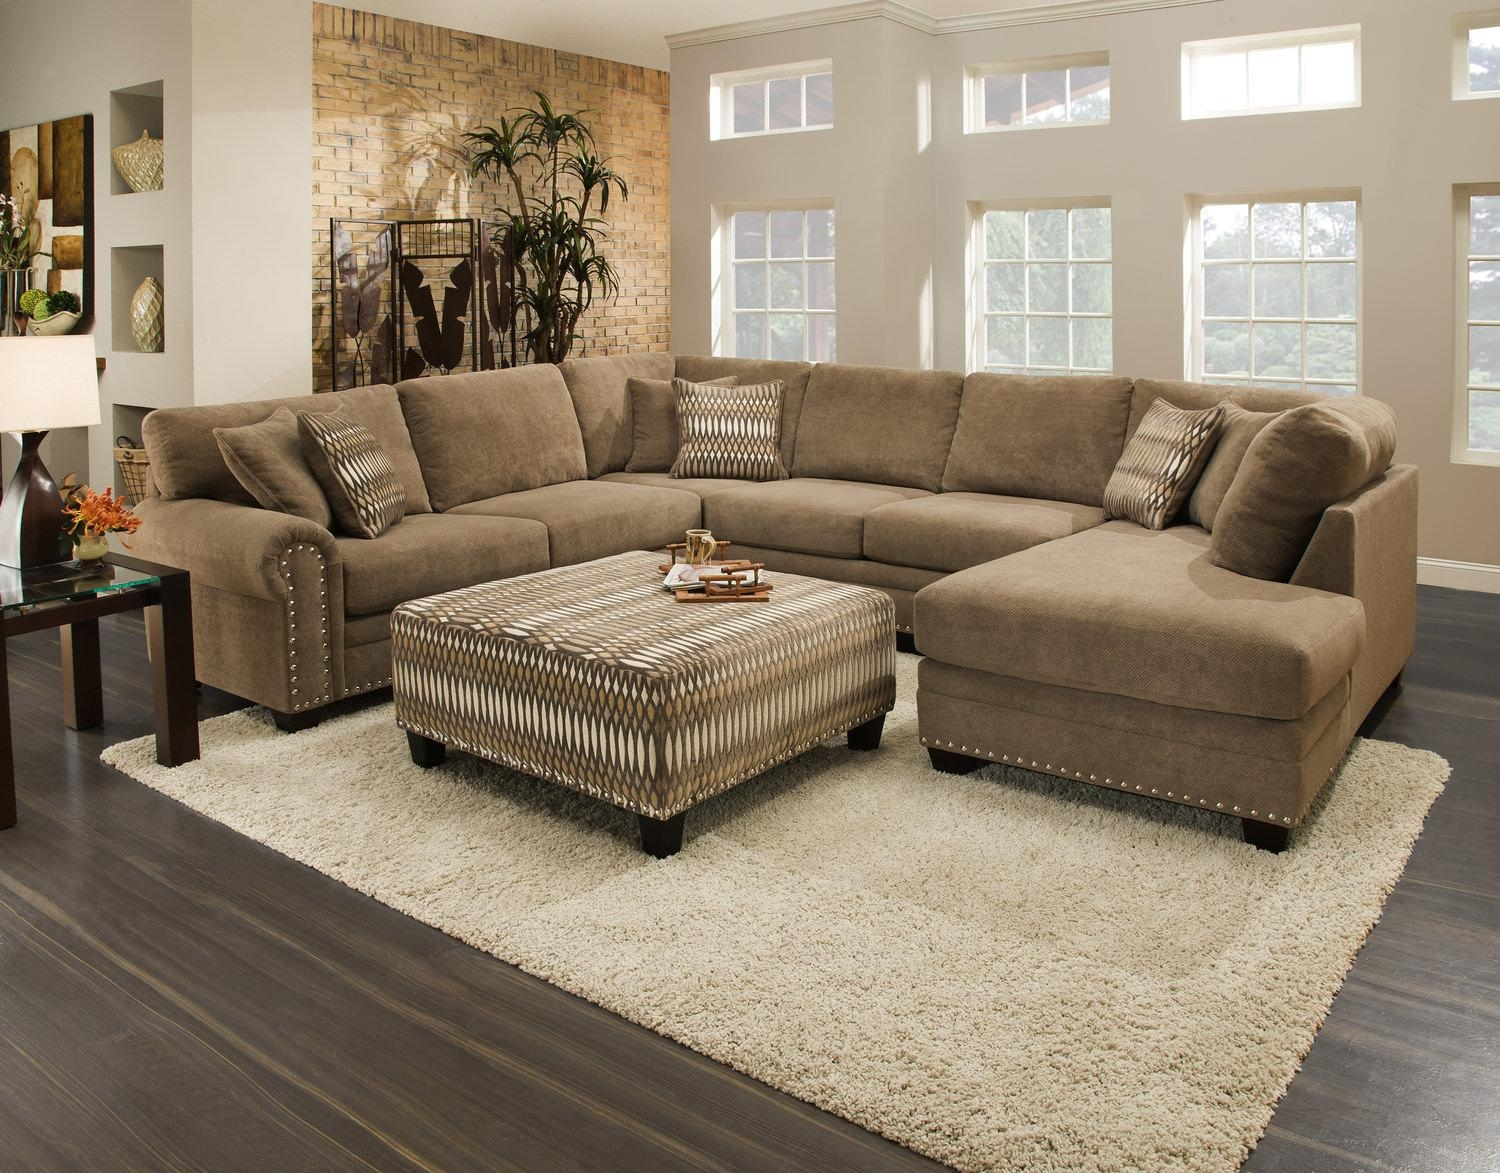 Sectional Sofas – Living Room Seating – Hom Furniture In Sealy Leather Sofas (View 18 of 20)